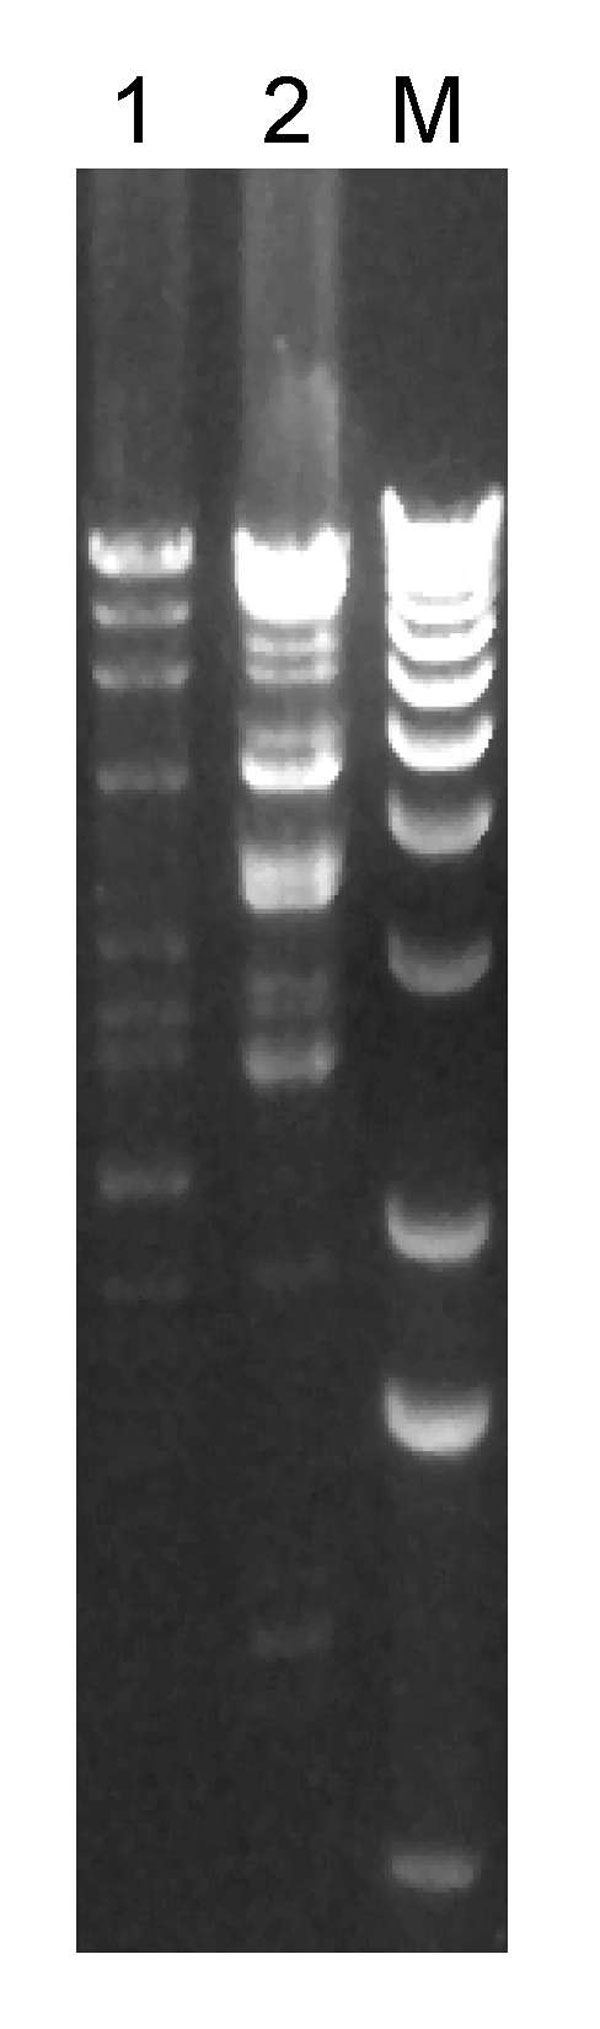 Restriction enzyme (HindIII) digest of plasmids prepared from vancomycin-resistant Staphylococcus aureus (VRSA) isolates from 2 patients in Michigan, USA, 2007. Each lane is labeled with the VRSA isolate number; lane M, 1-kb molecular marker.